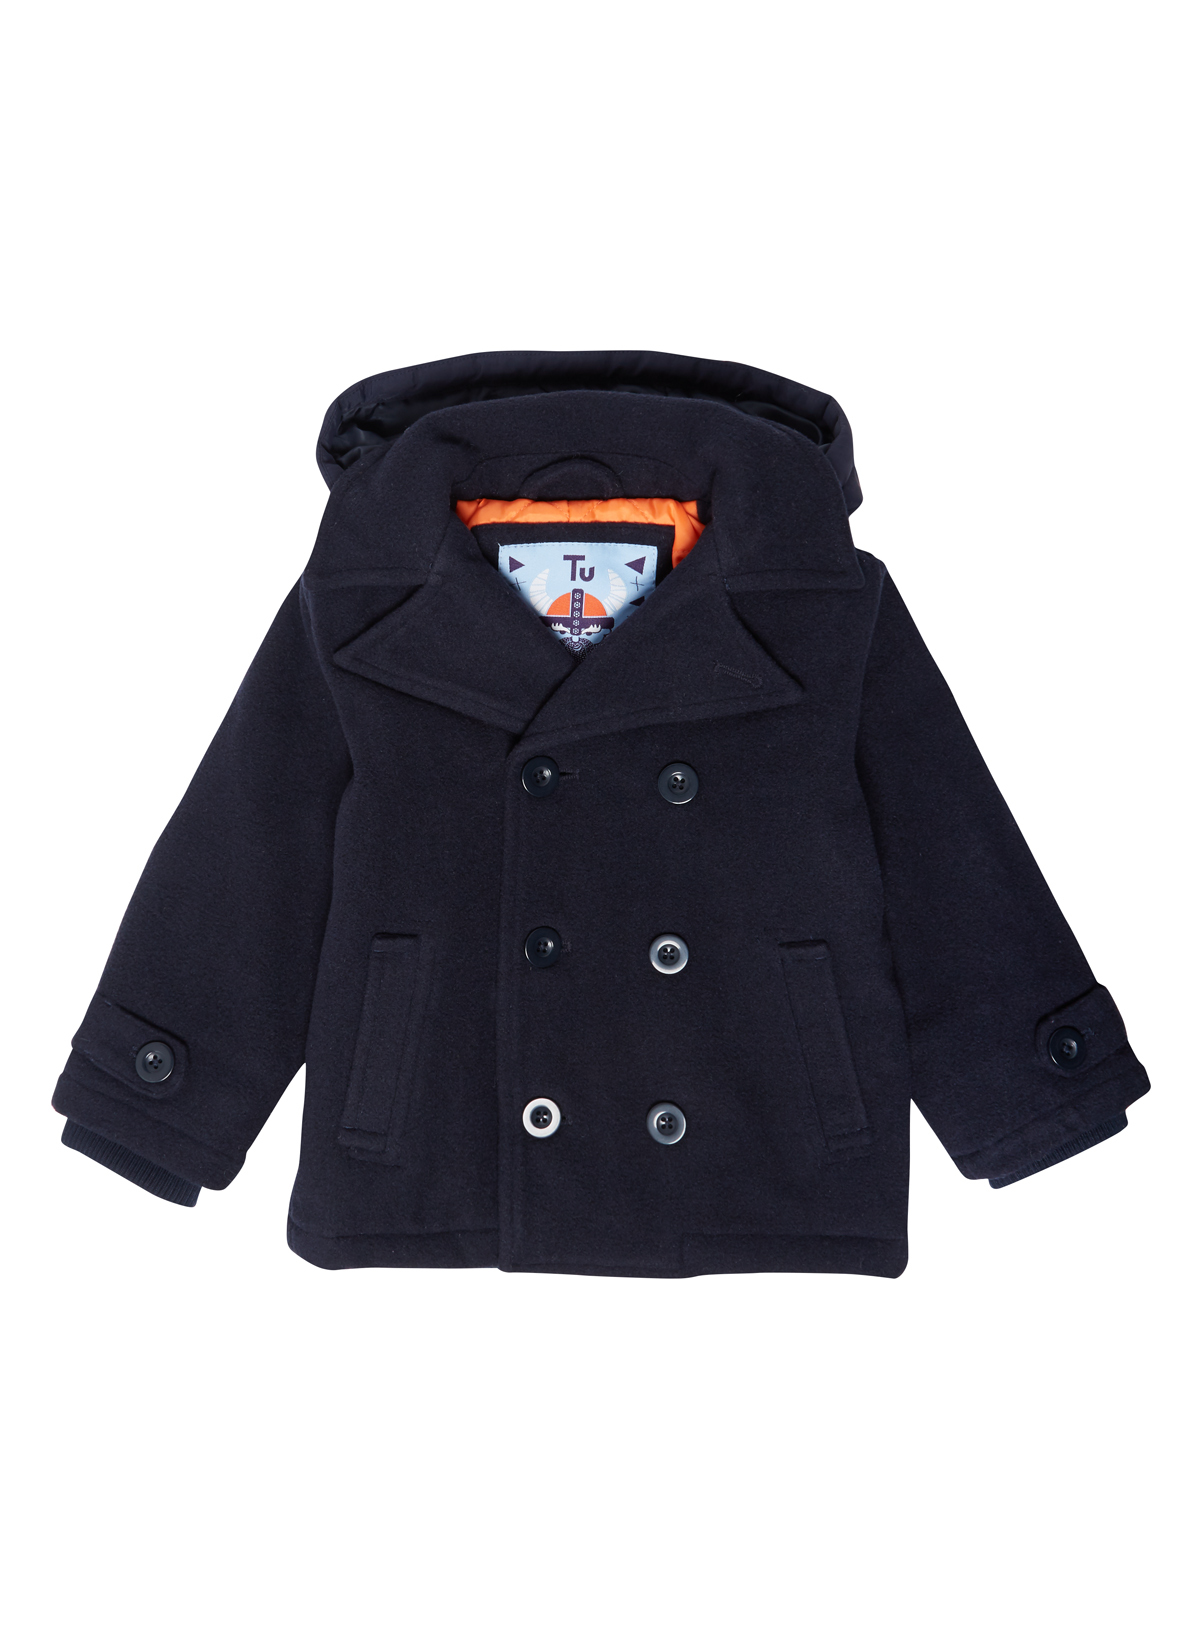 All Boy's Clothing Boys Navy Peacoat (9 months-5 years) | Tu clothing